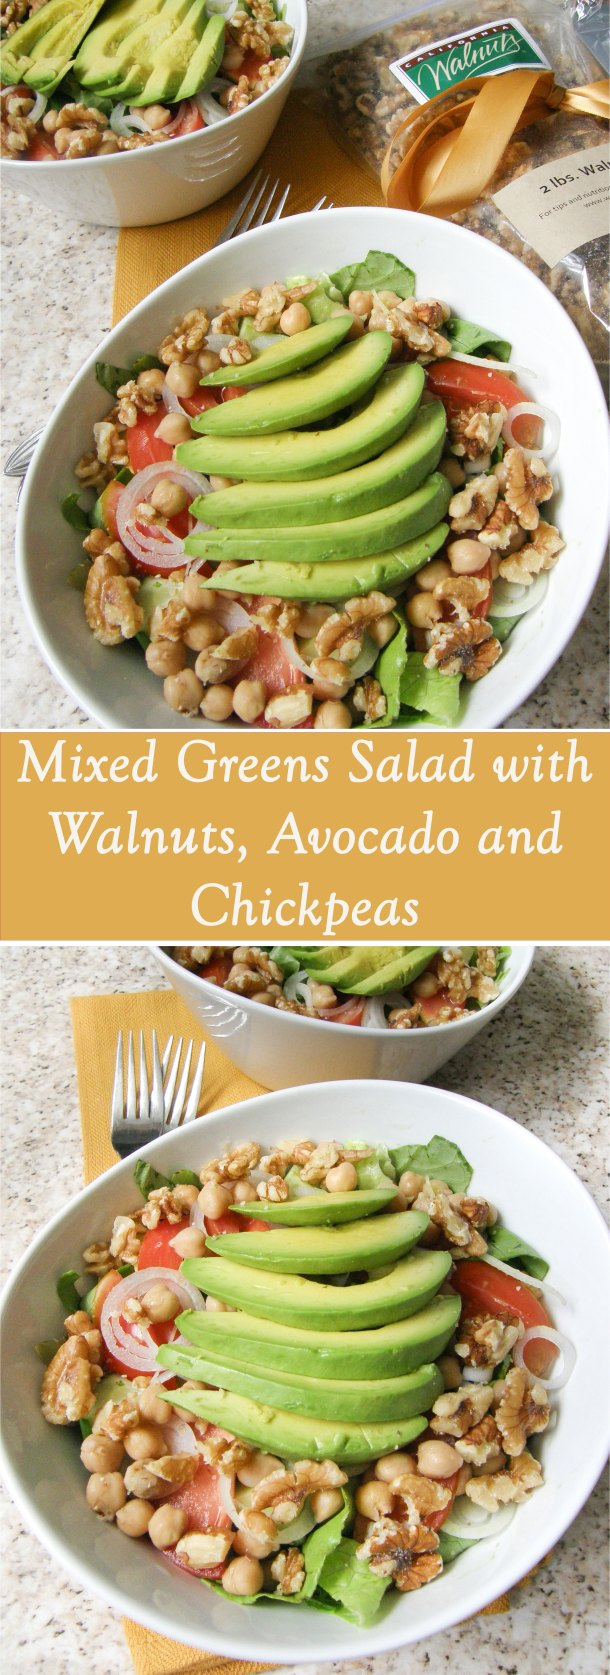 Mixed Greens Salad with Walnuts, Avocado and Chickpeas #Sponsored